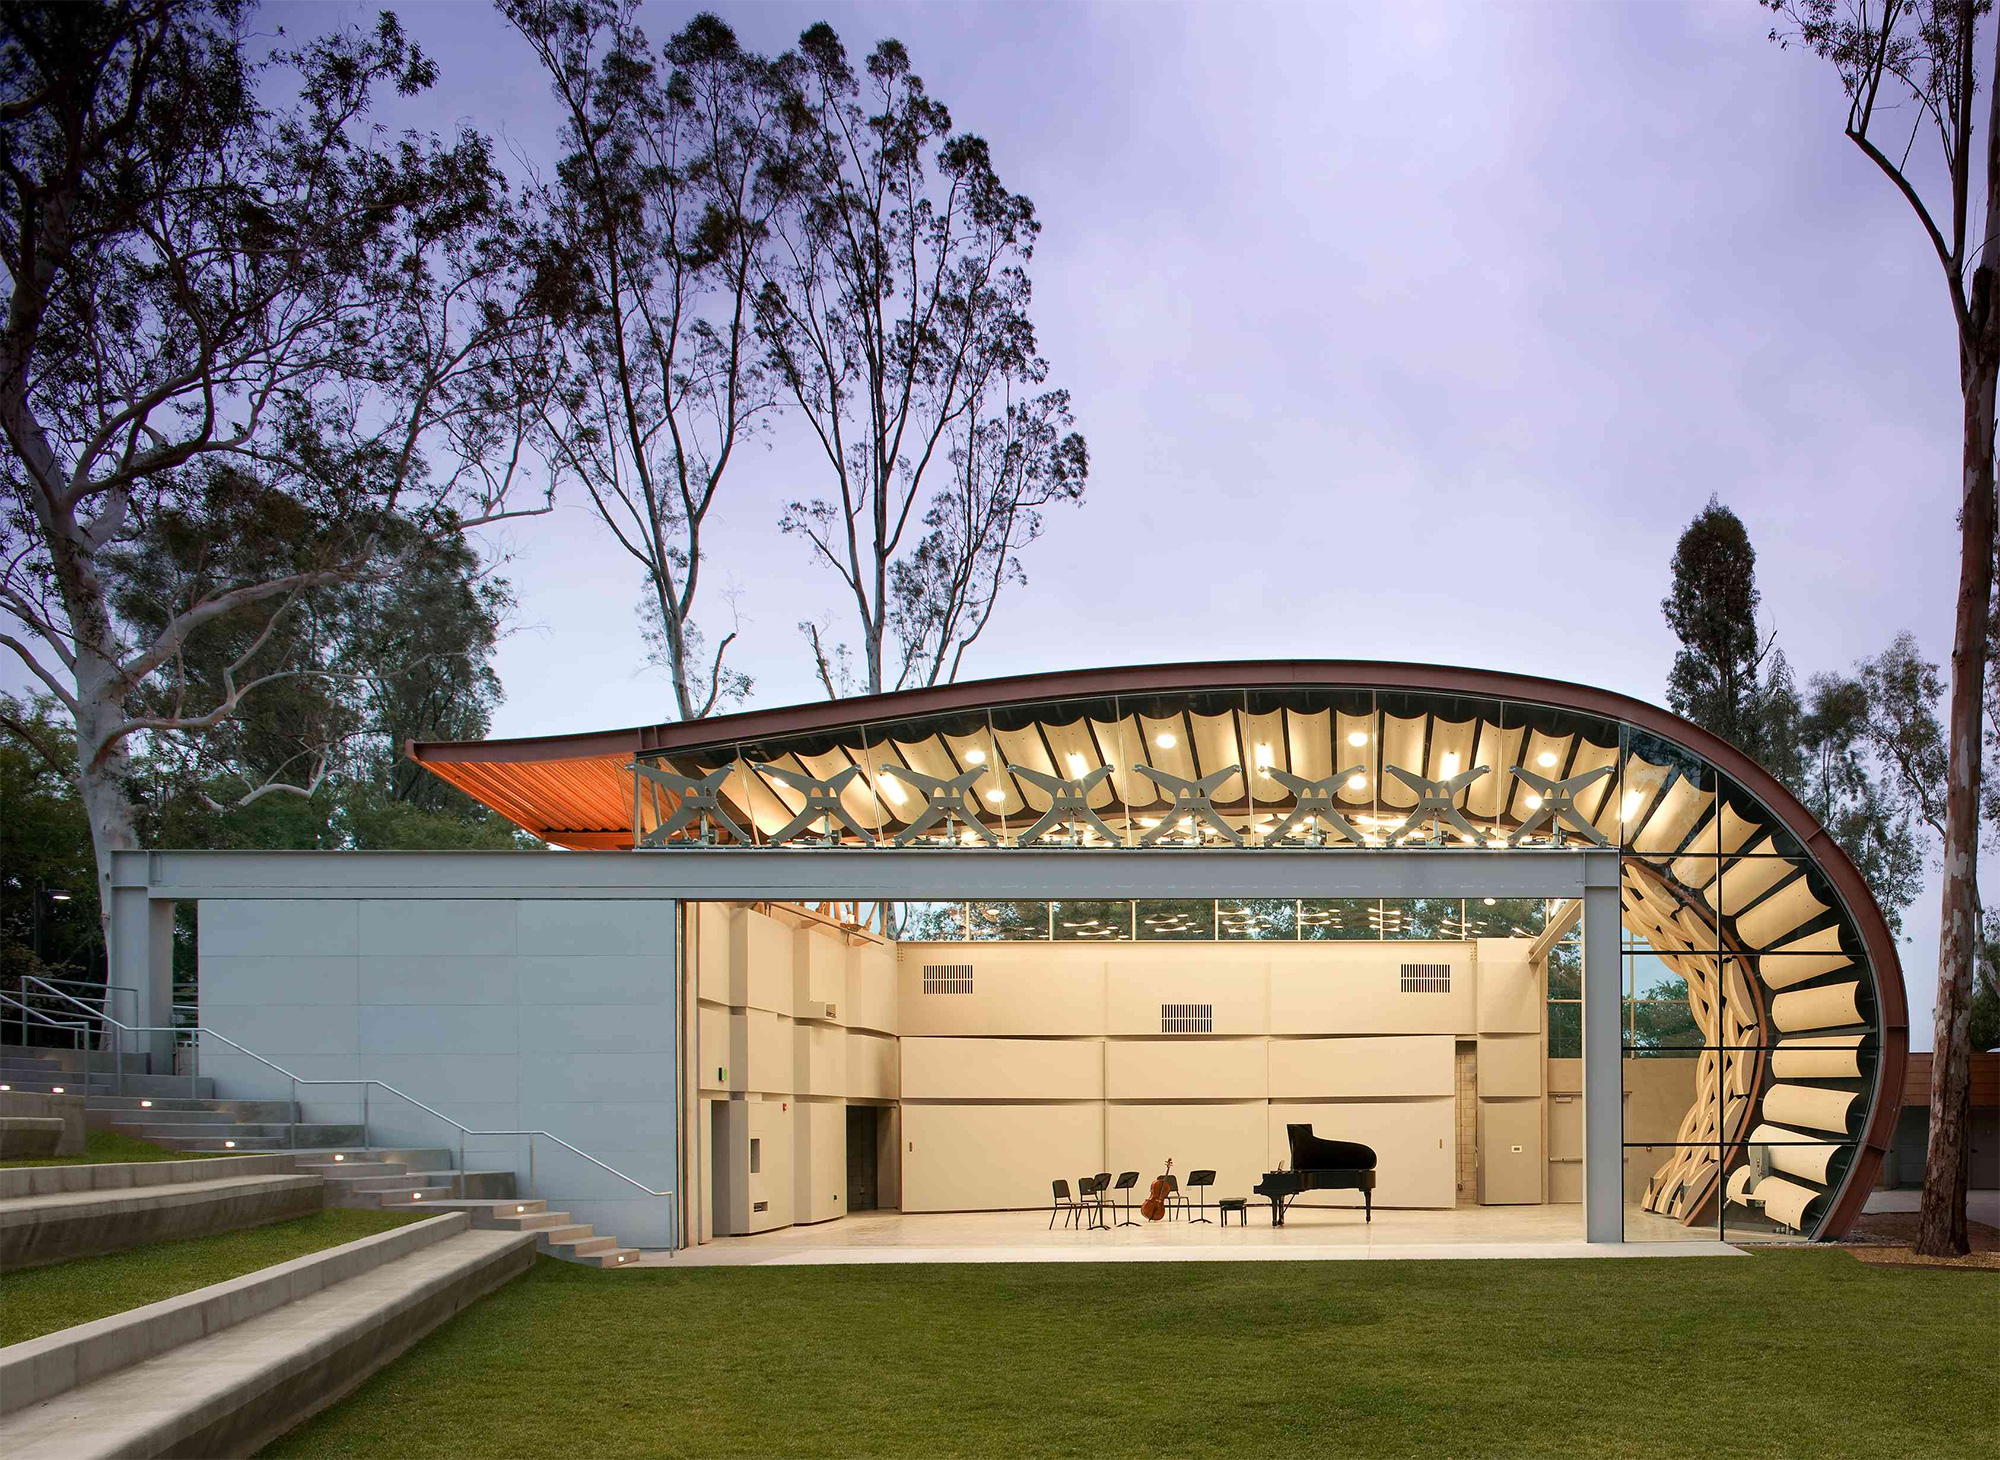 WildBeast Pavilion, by Hodgetts + Fung